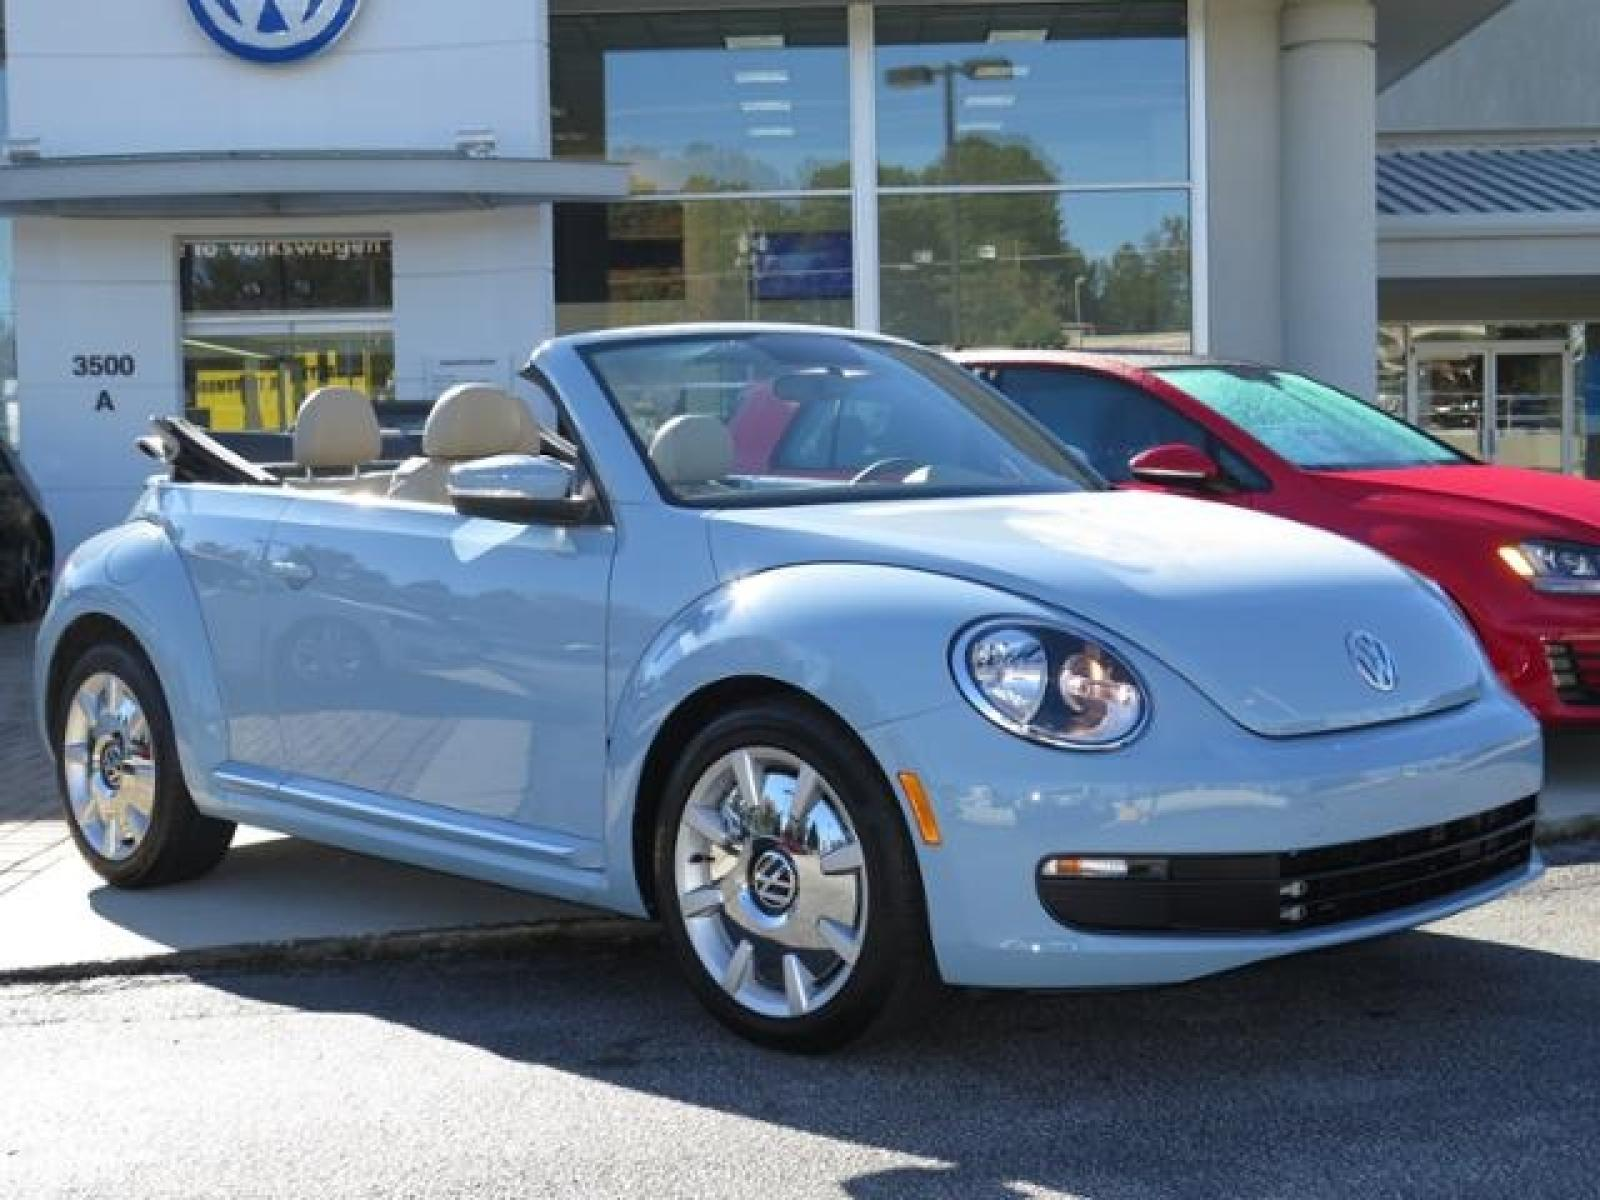 2015 volkswagen beetle convertible information and photos zombiedrive. Black Bedroom Furniture Sets. Home Design Ideas